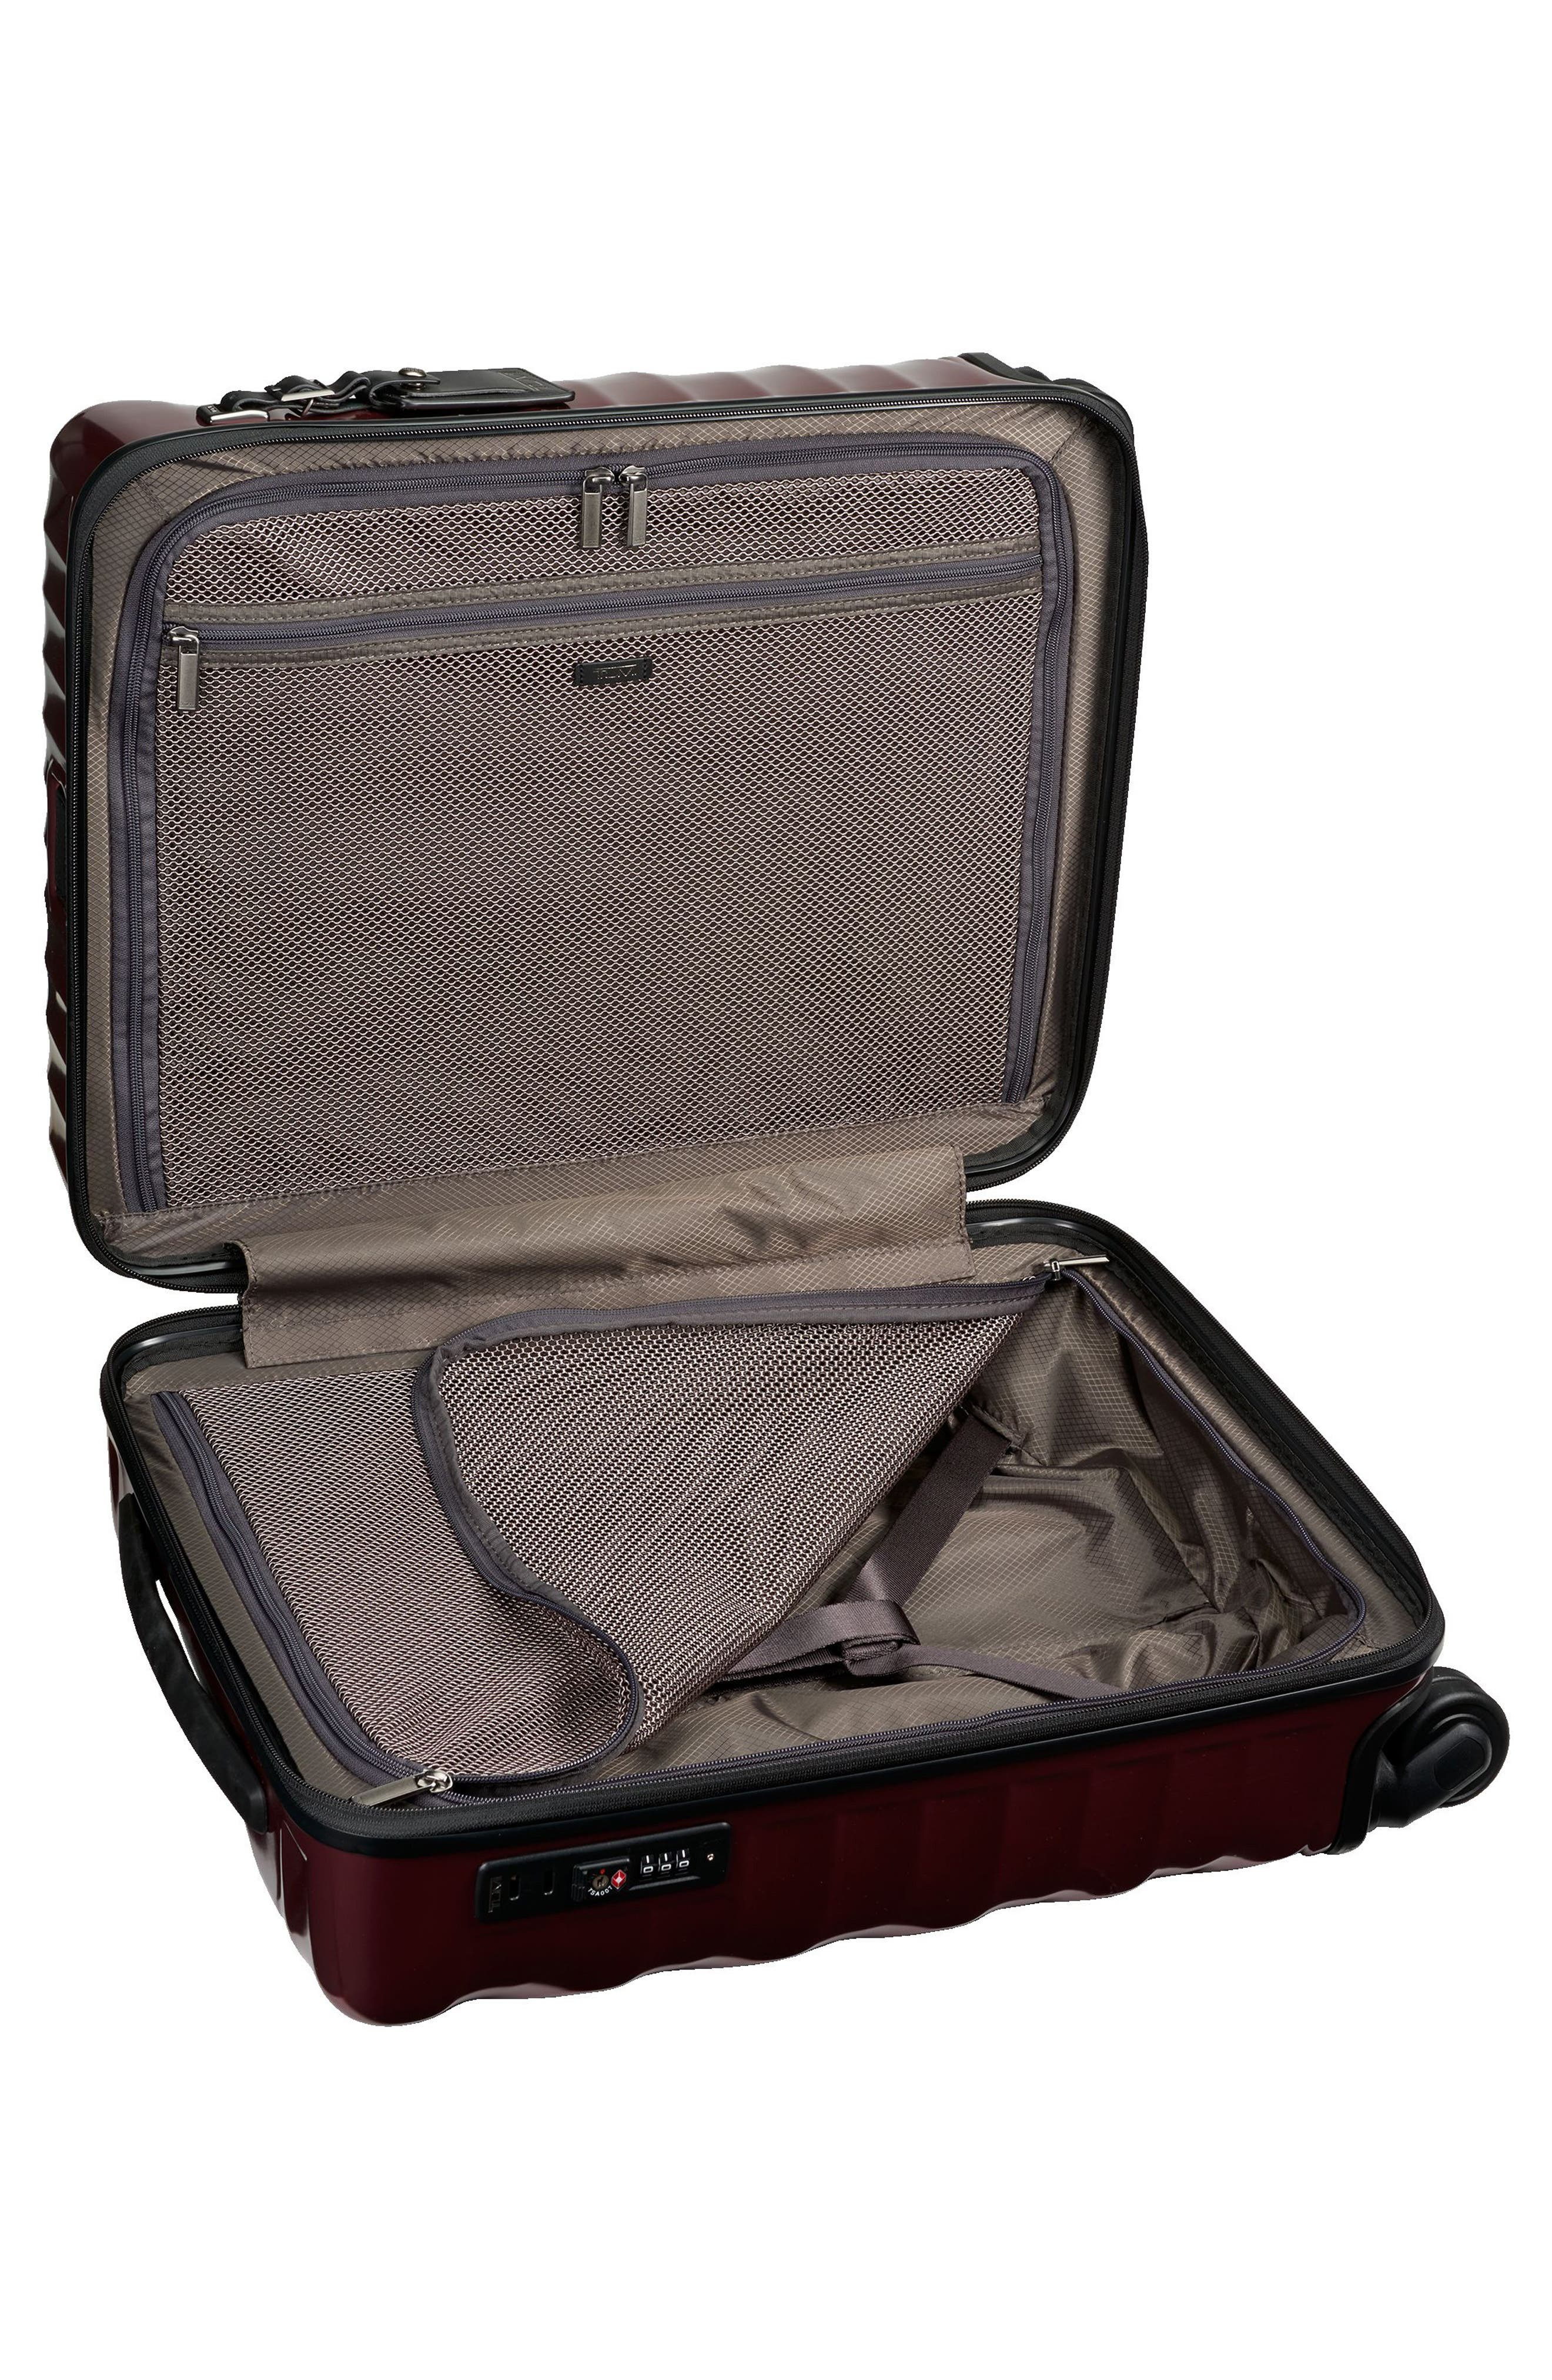 19 Degree 22-Inch Continental Wheeled Carry-On,                             Alternate thumbnail 3, color,                             Bordeaux